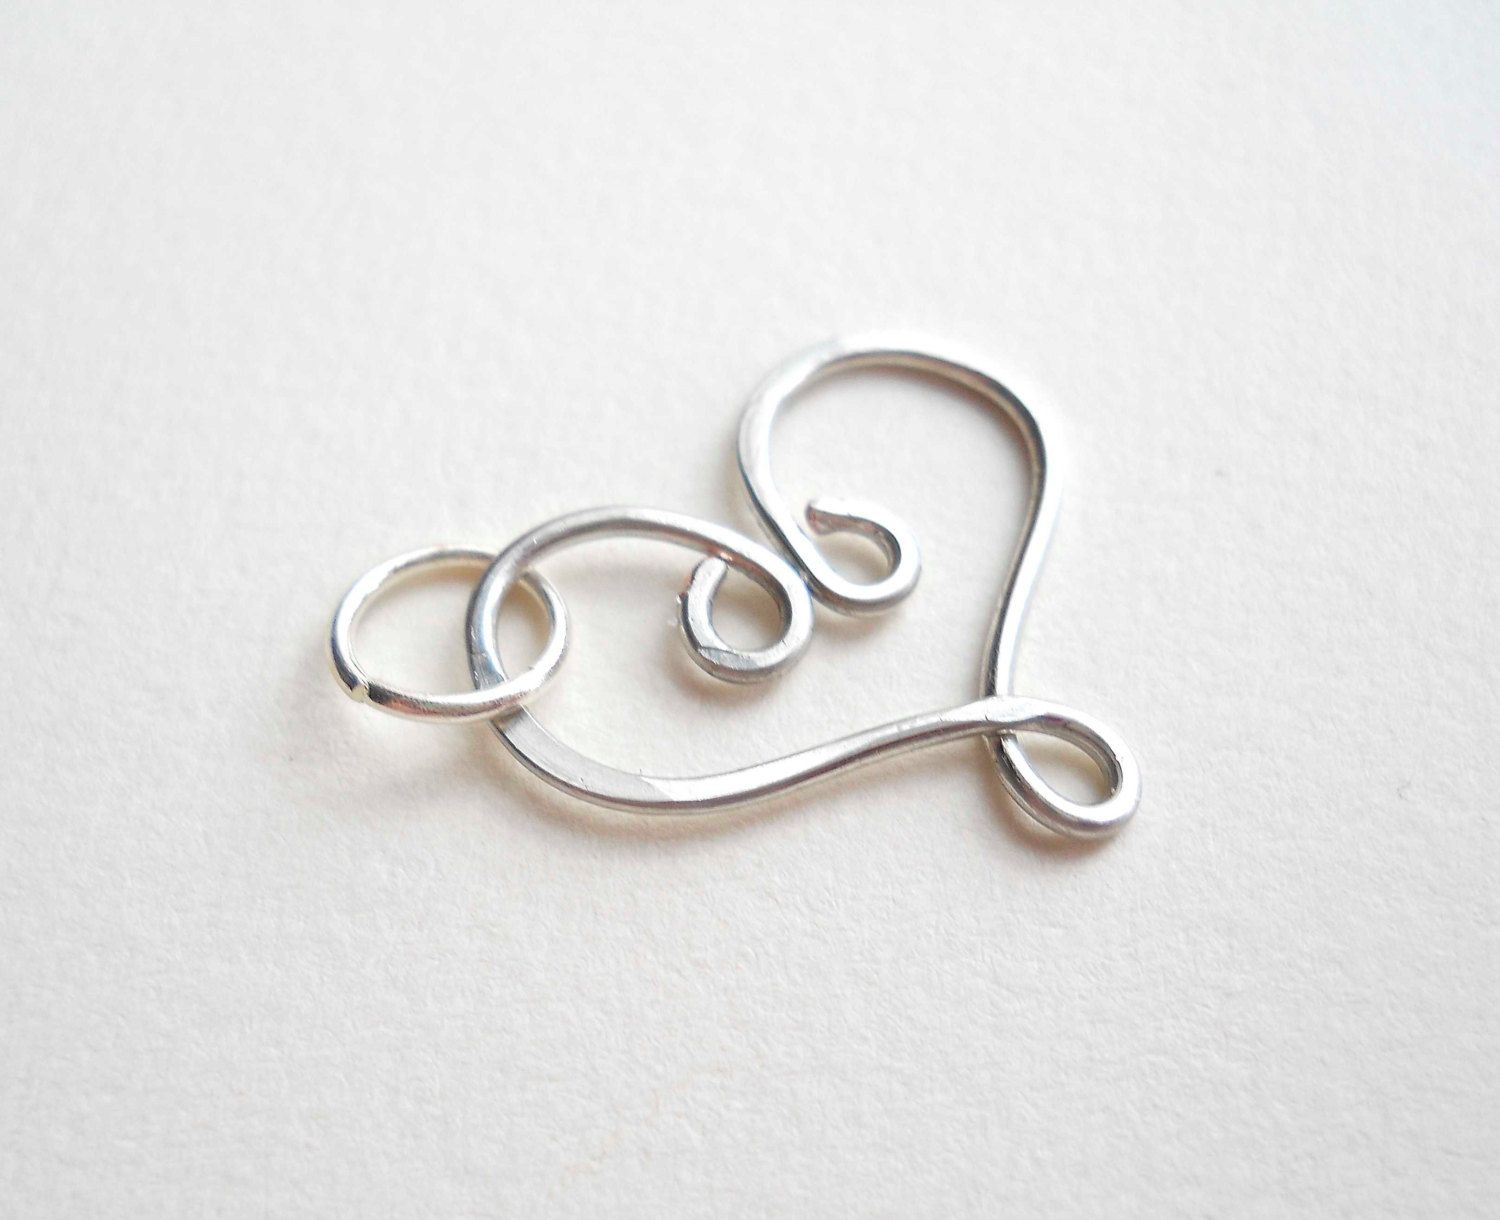 Potential barbed wire pattern | Barbed | Pinterest | Heart charm ...